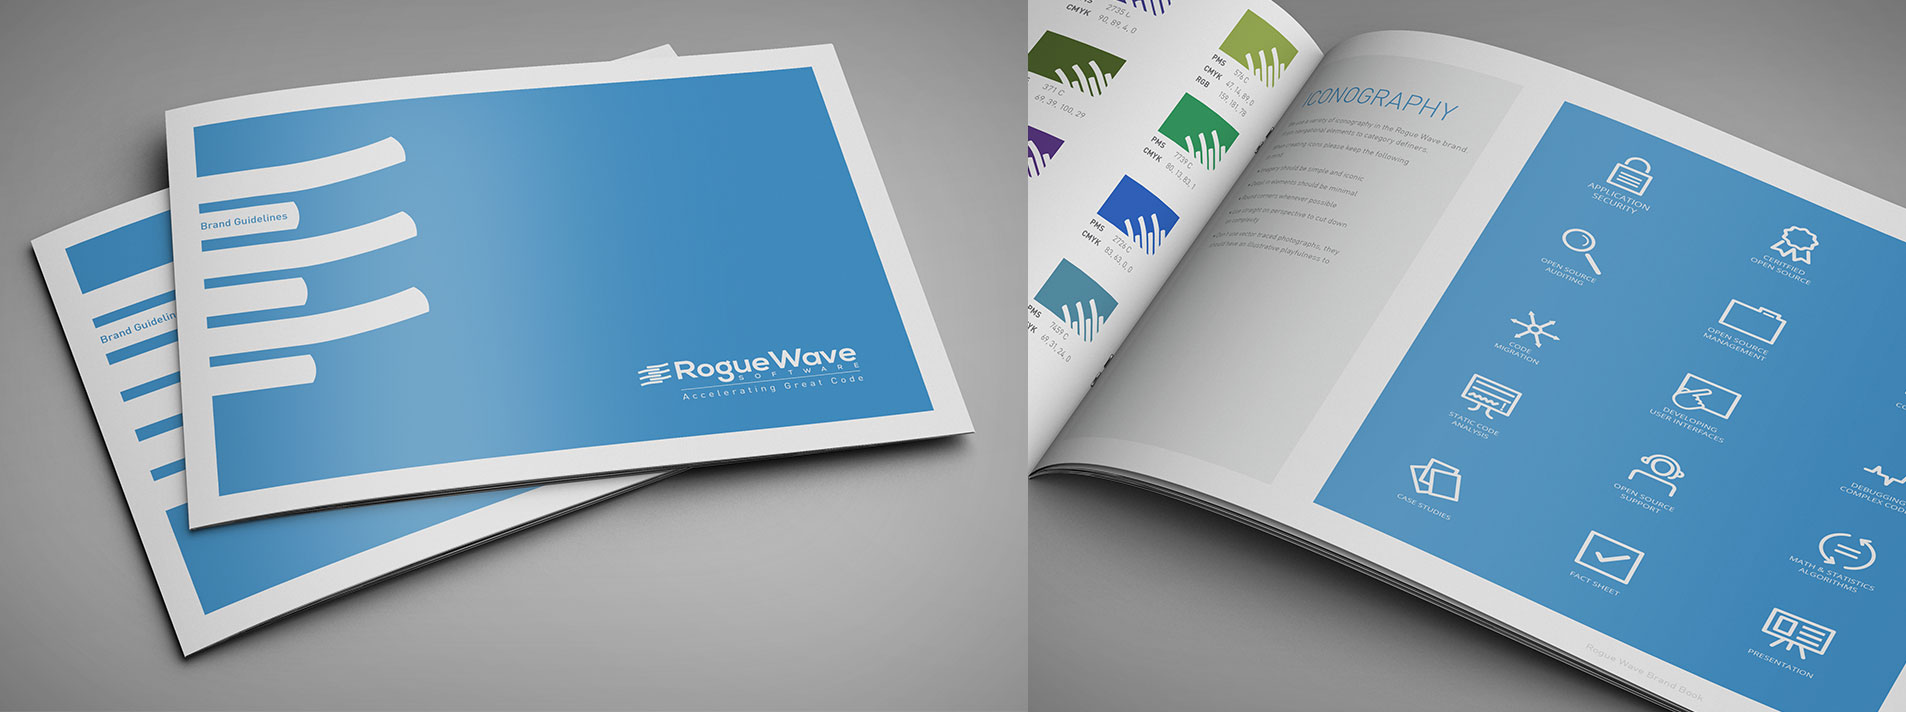 print design project for rogue wave